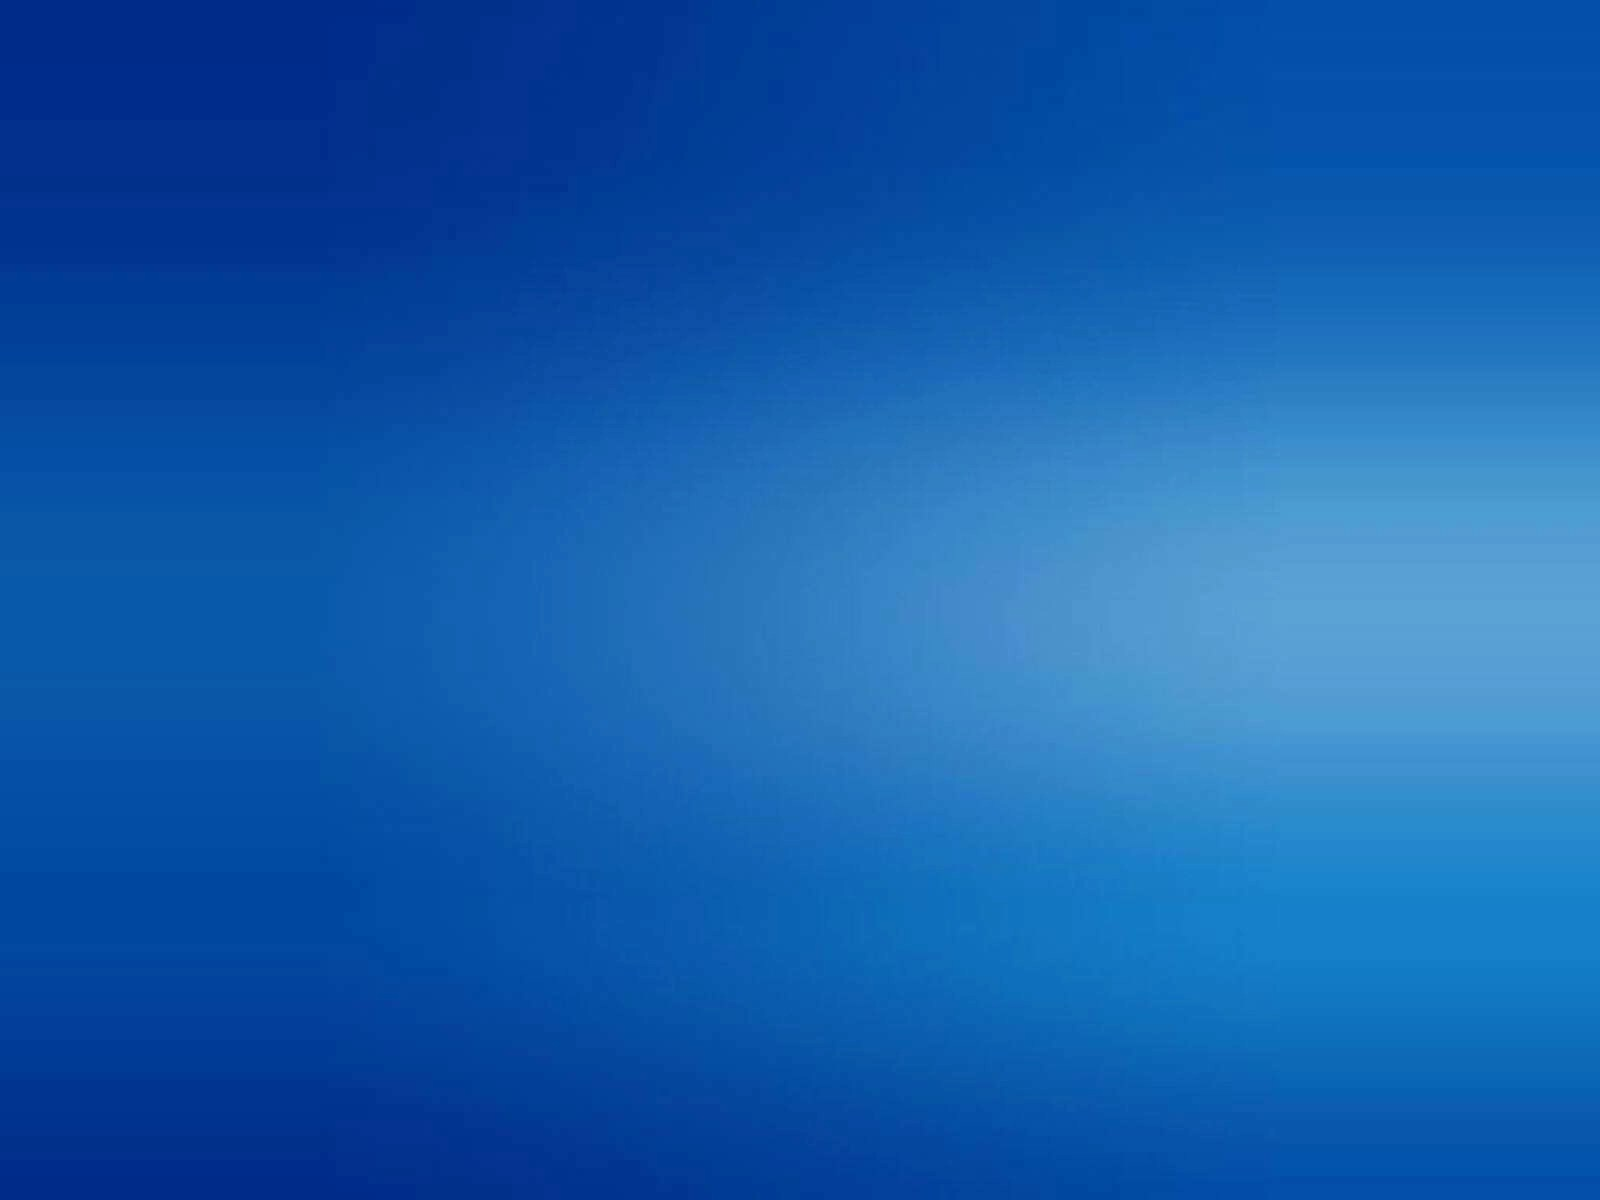 Free 15 Plain Blue Backgrounds In Psd